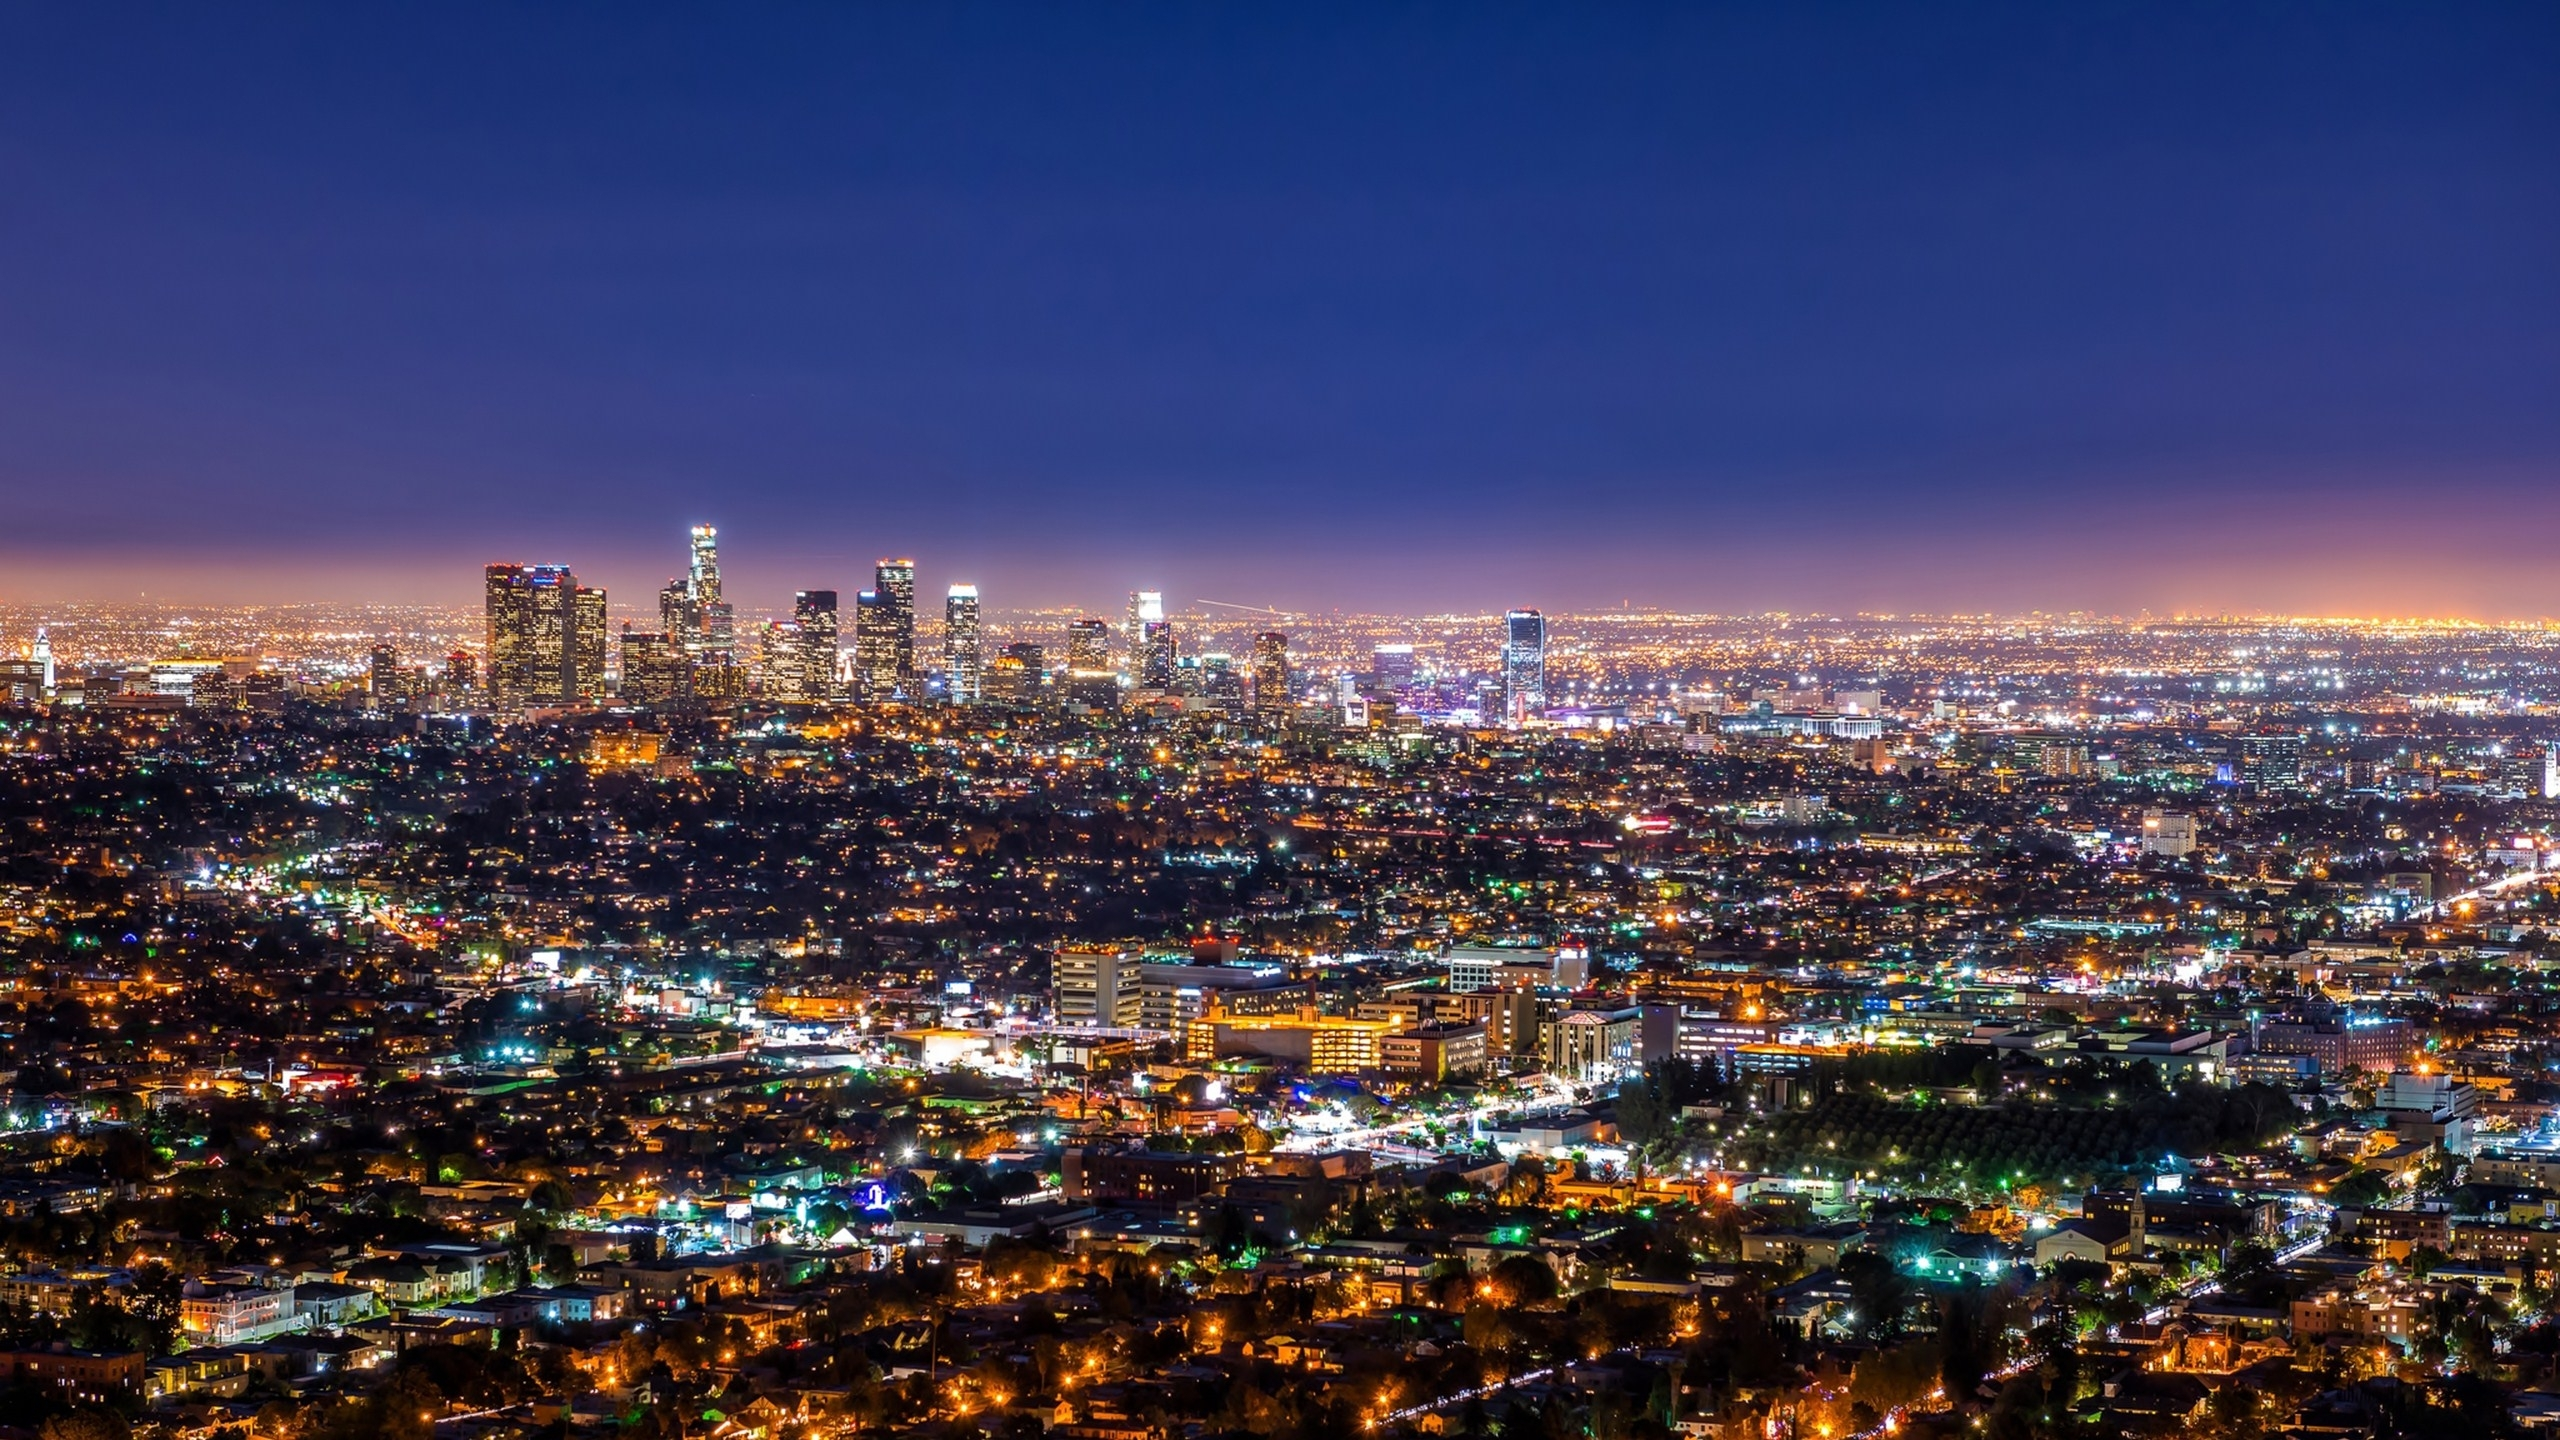 los angeles wallpaper hd for desktop - media file | pixelstalk